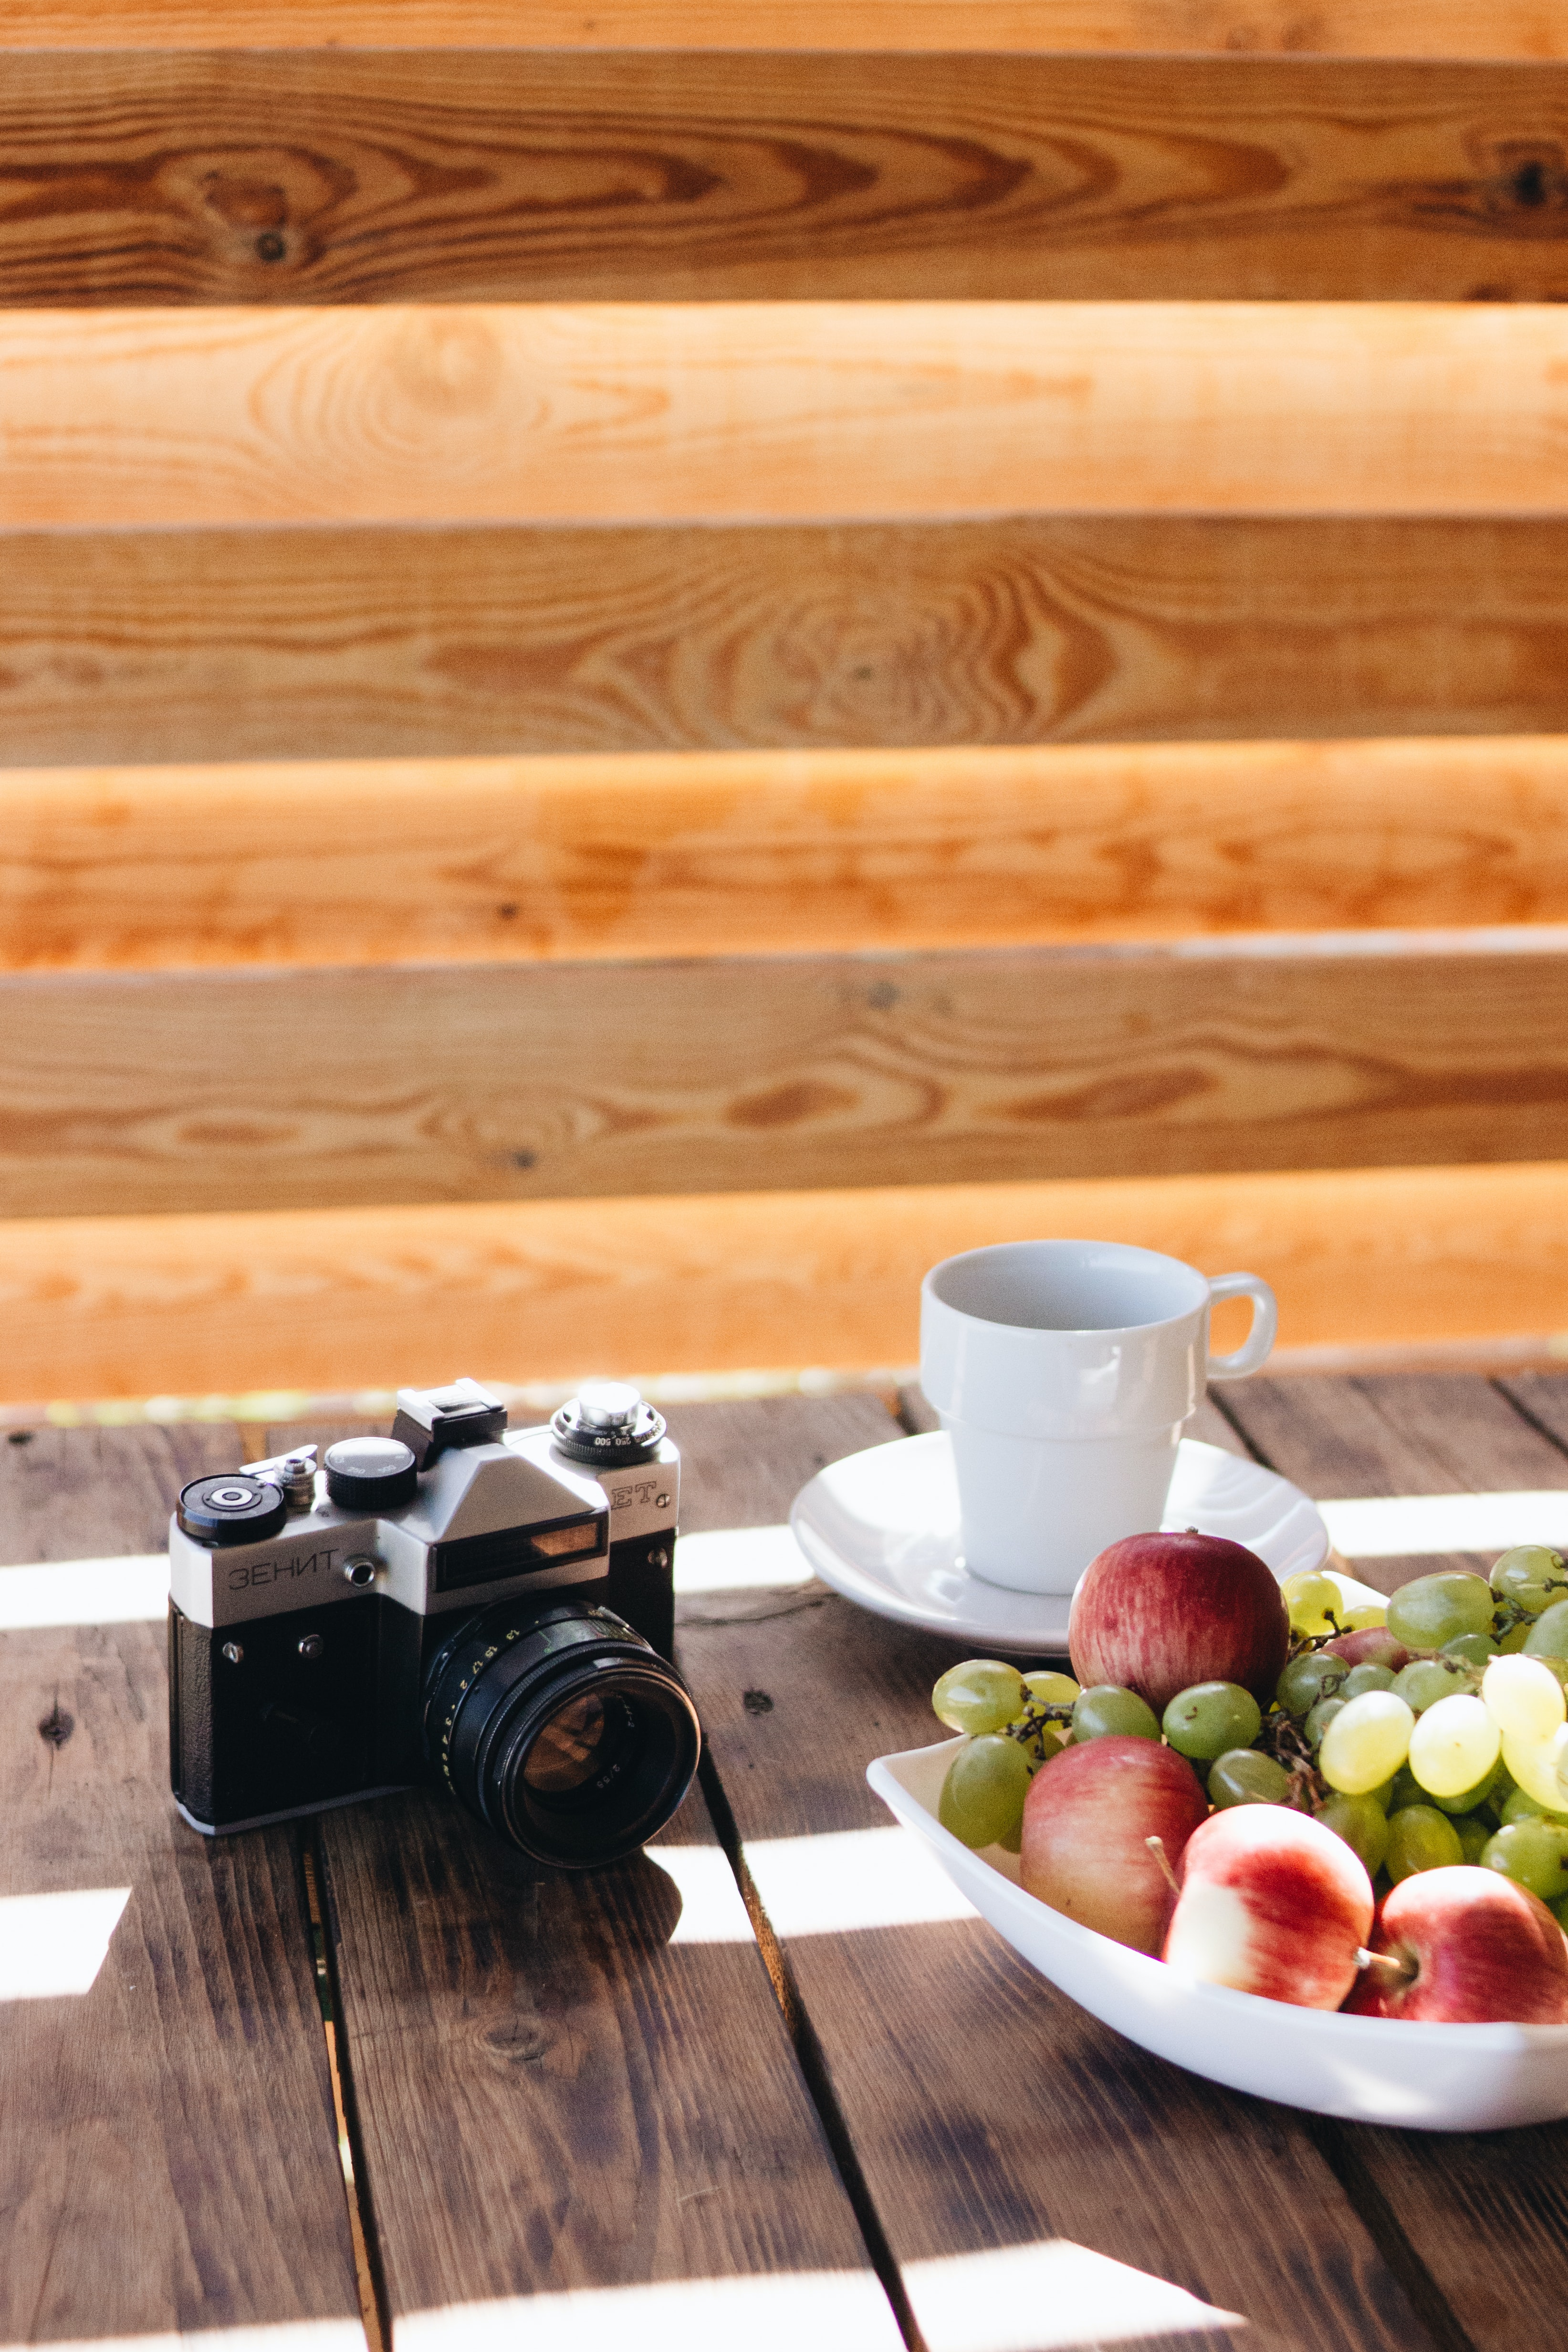 black and gray IMC camera beside white cup on saucer and fruits in bowl